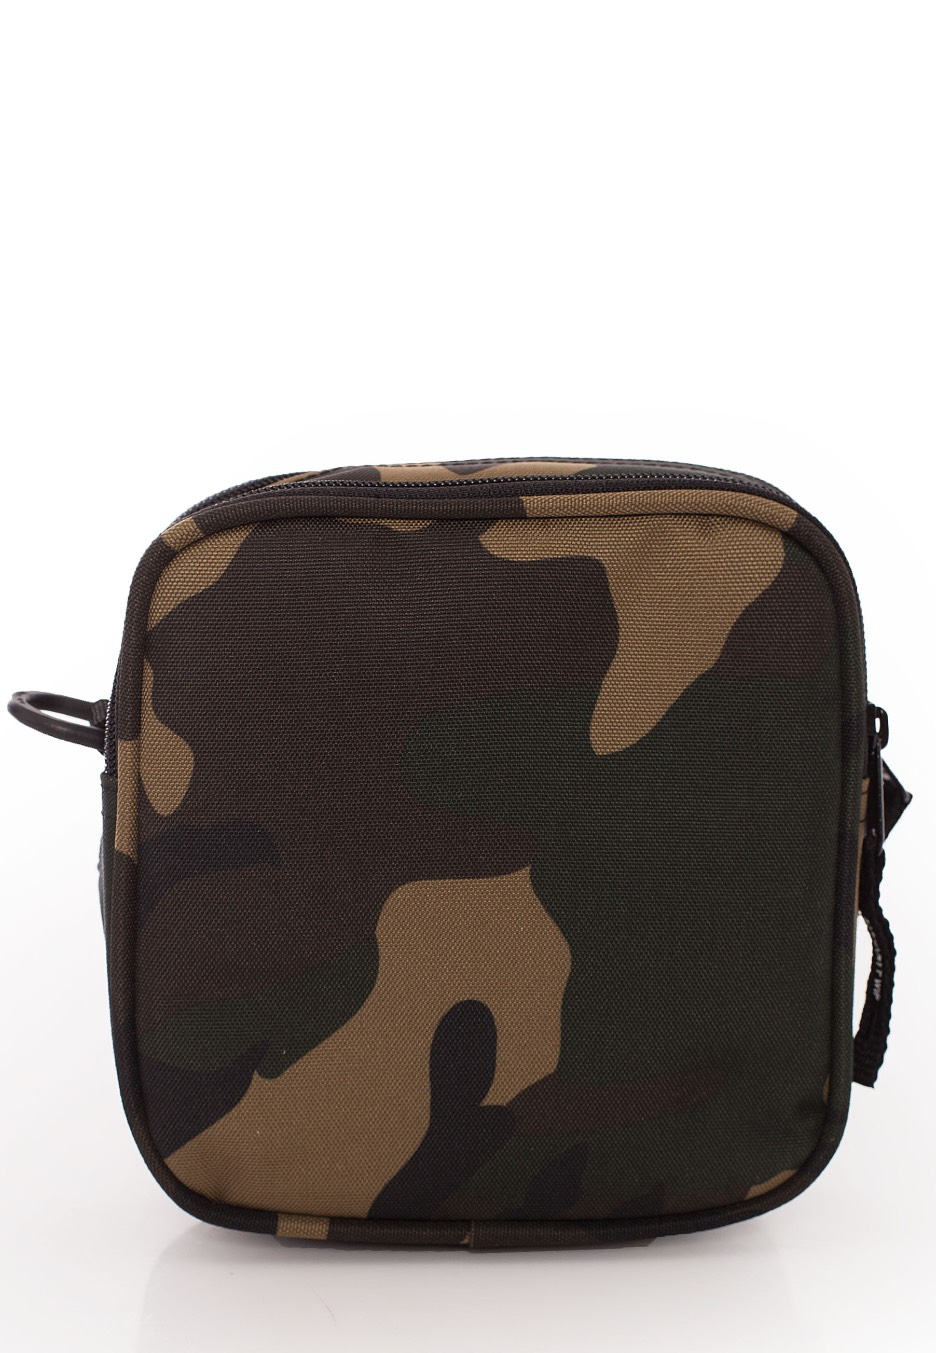 Carhartt Wip Essentials Duck Camo Laurel Bag